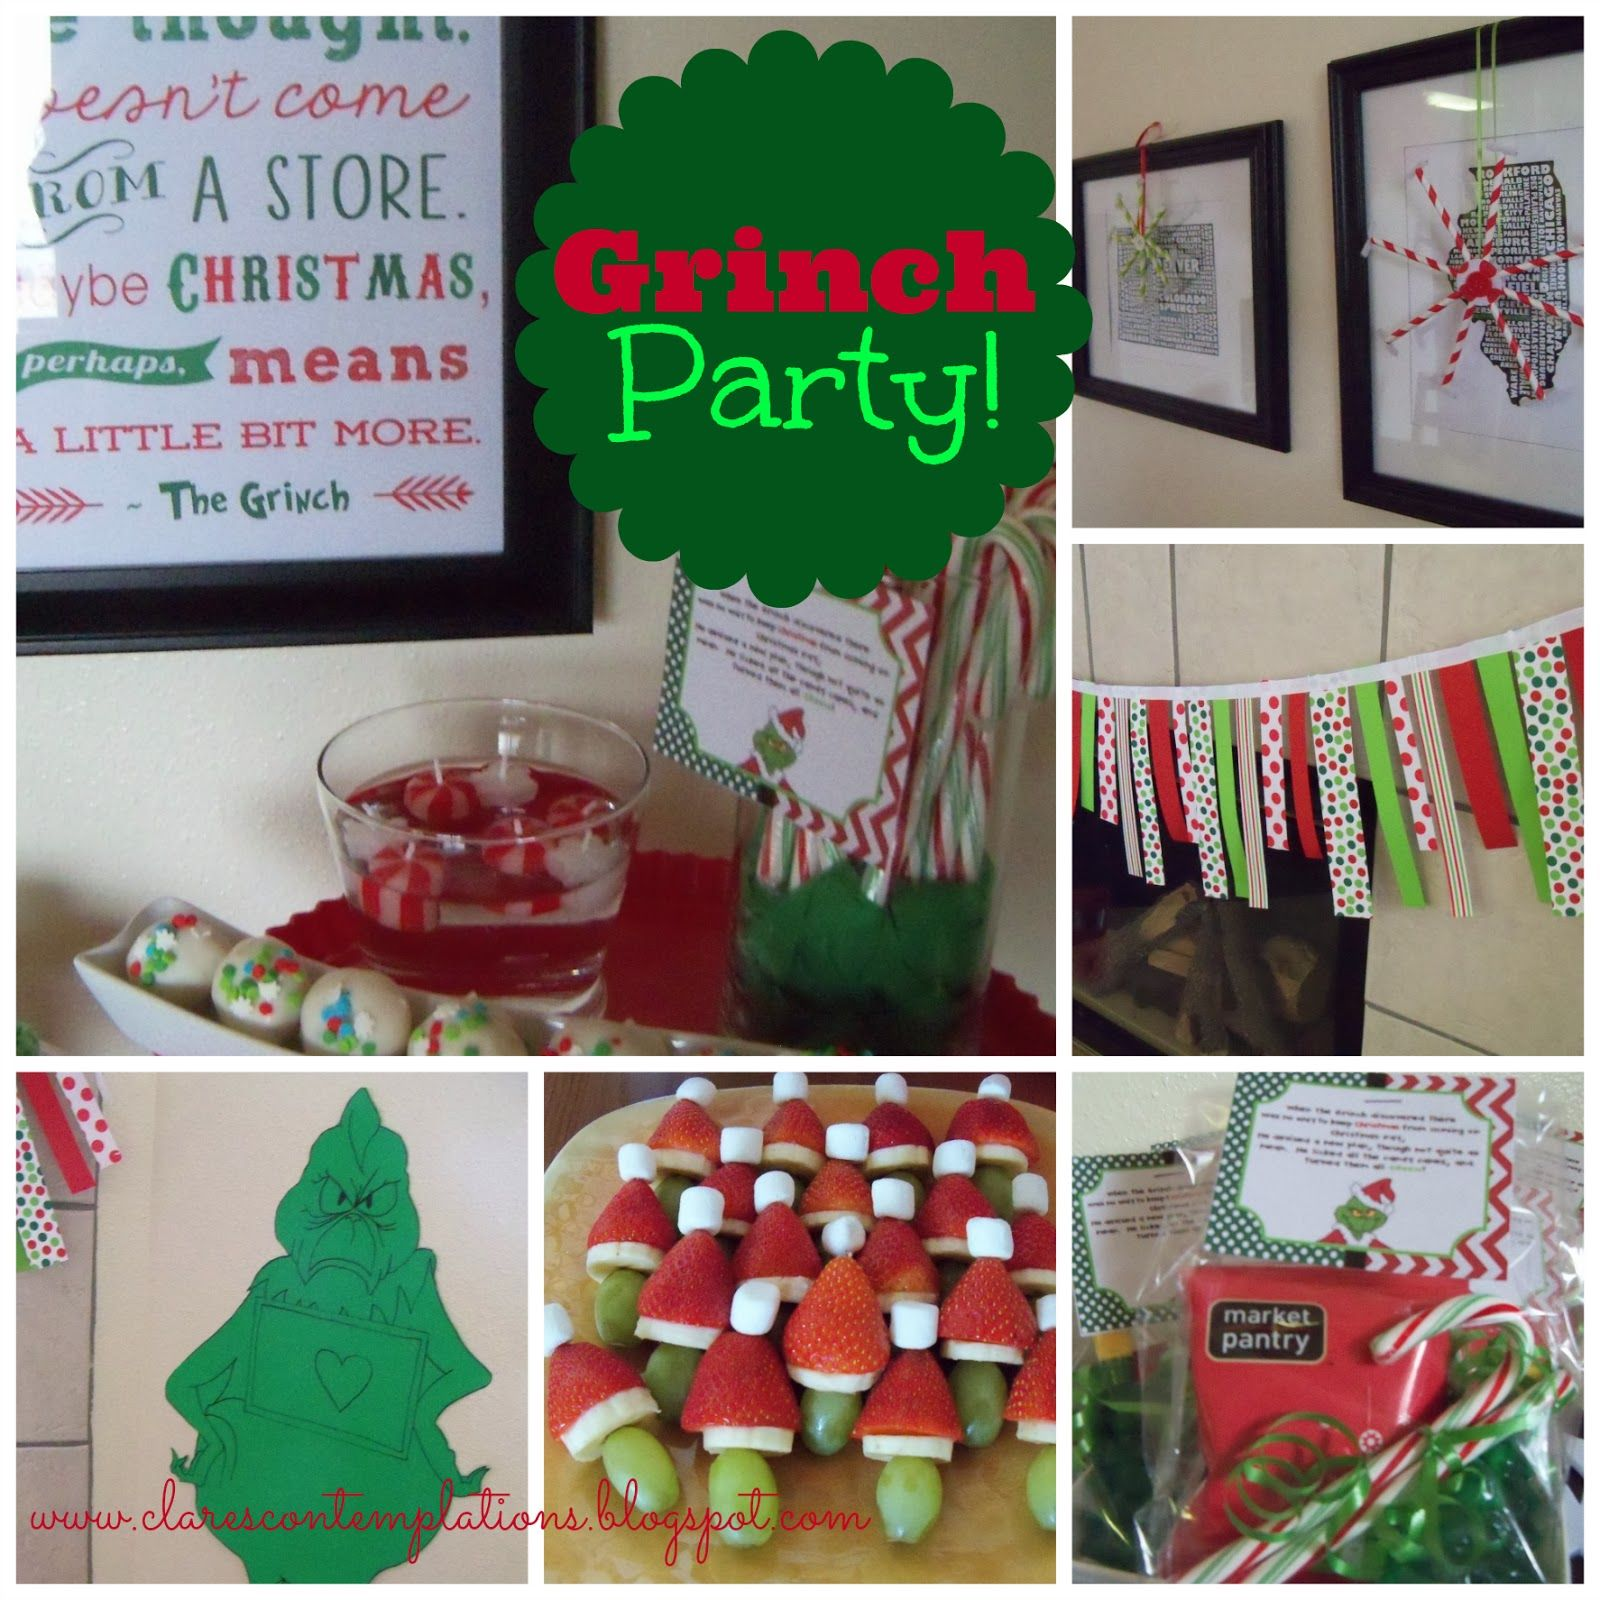 Grinch Christmas Party Ideas Part - 18: Great Grinch Party-lots Of Ideas For A Low-key, But Really Fun Kidsu0027 Christmas  Party! Nothing Complicated Or Expensive, But Your Ikids And Their Friends  ...